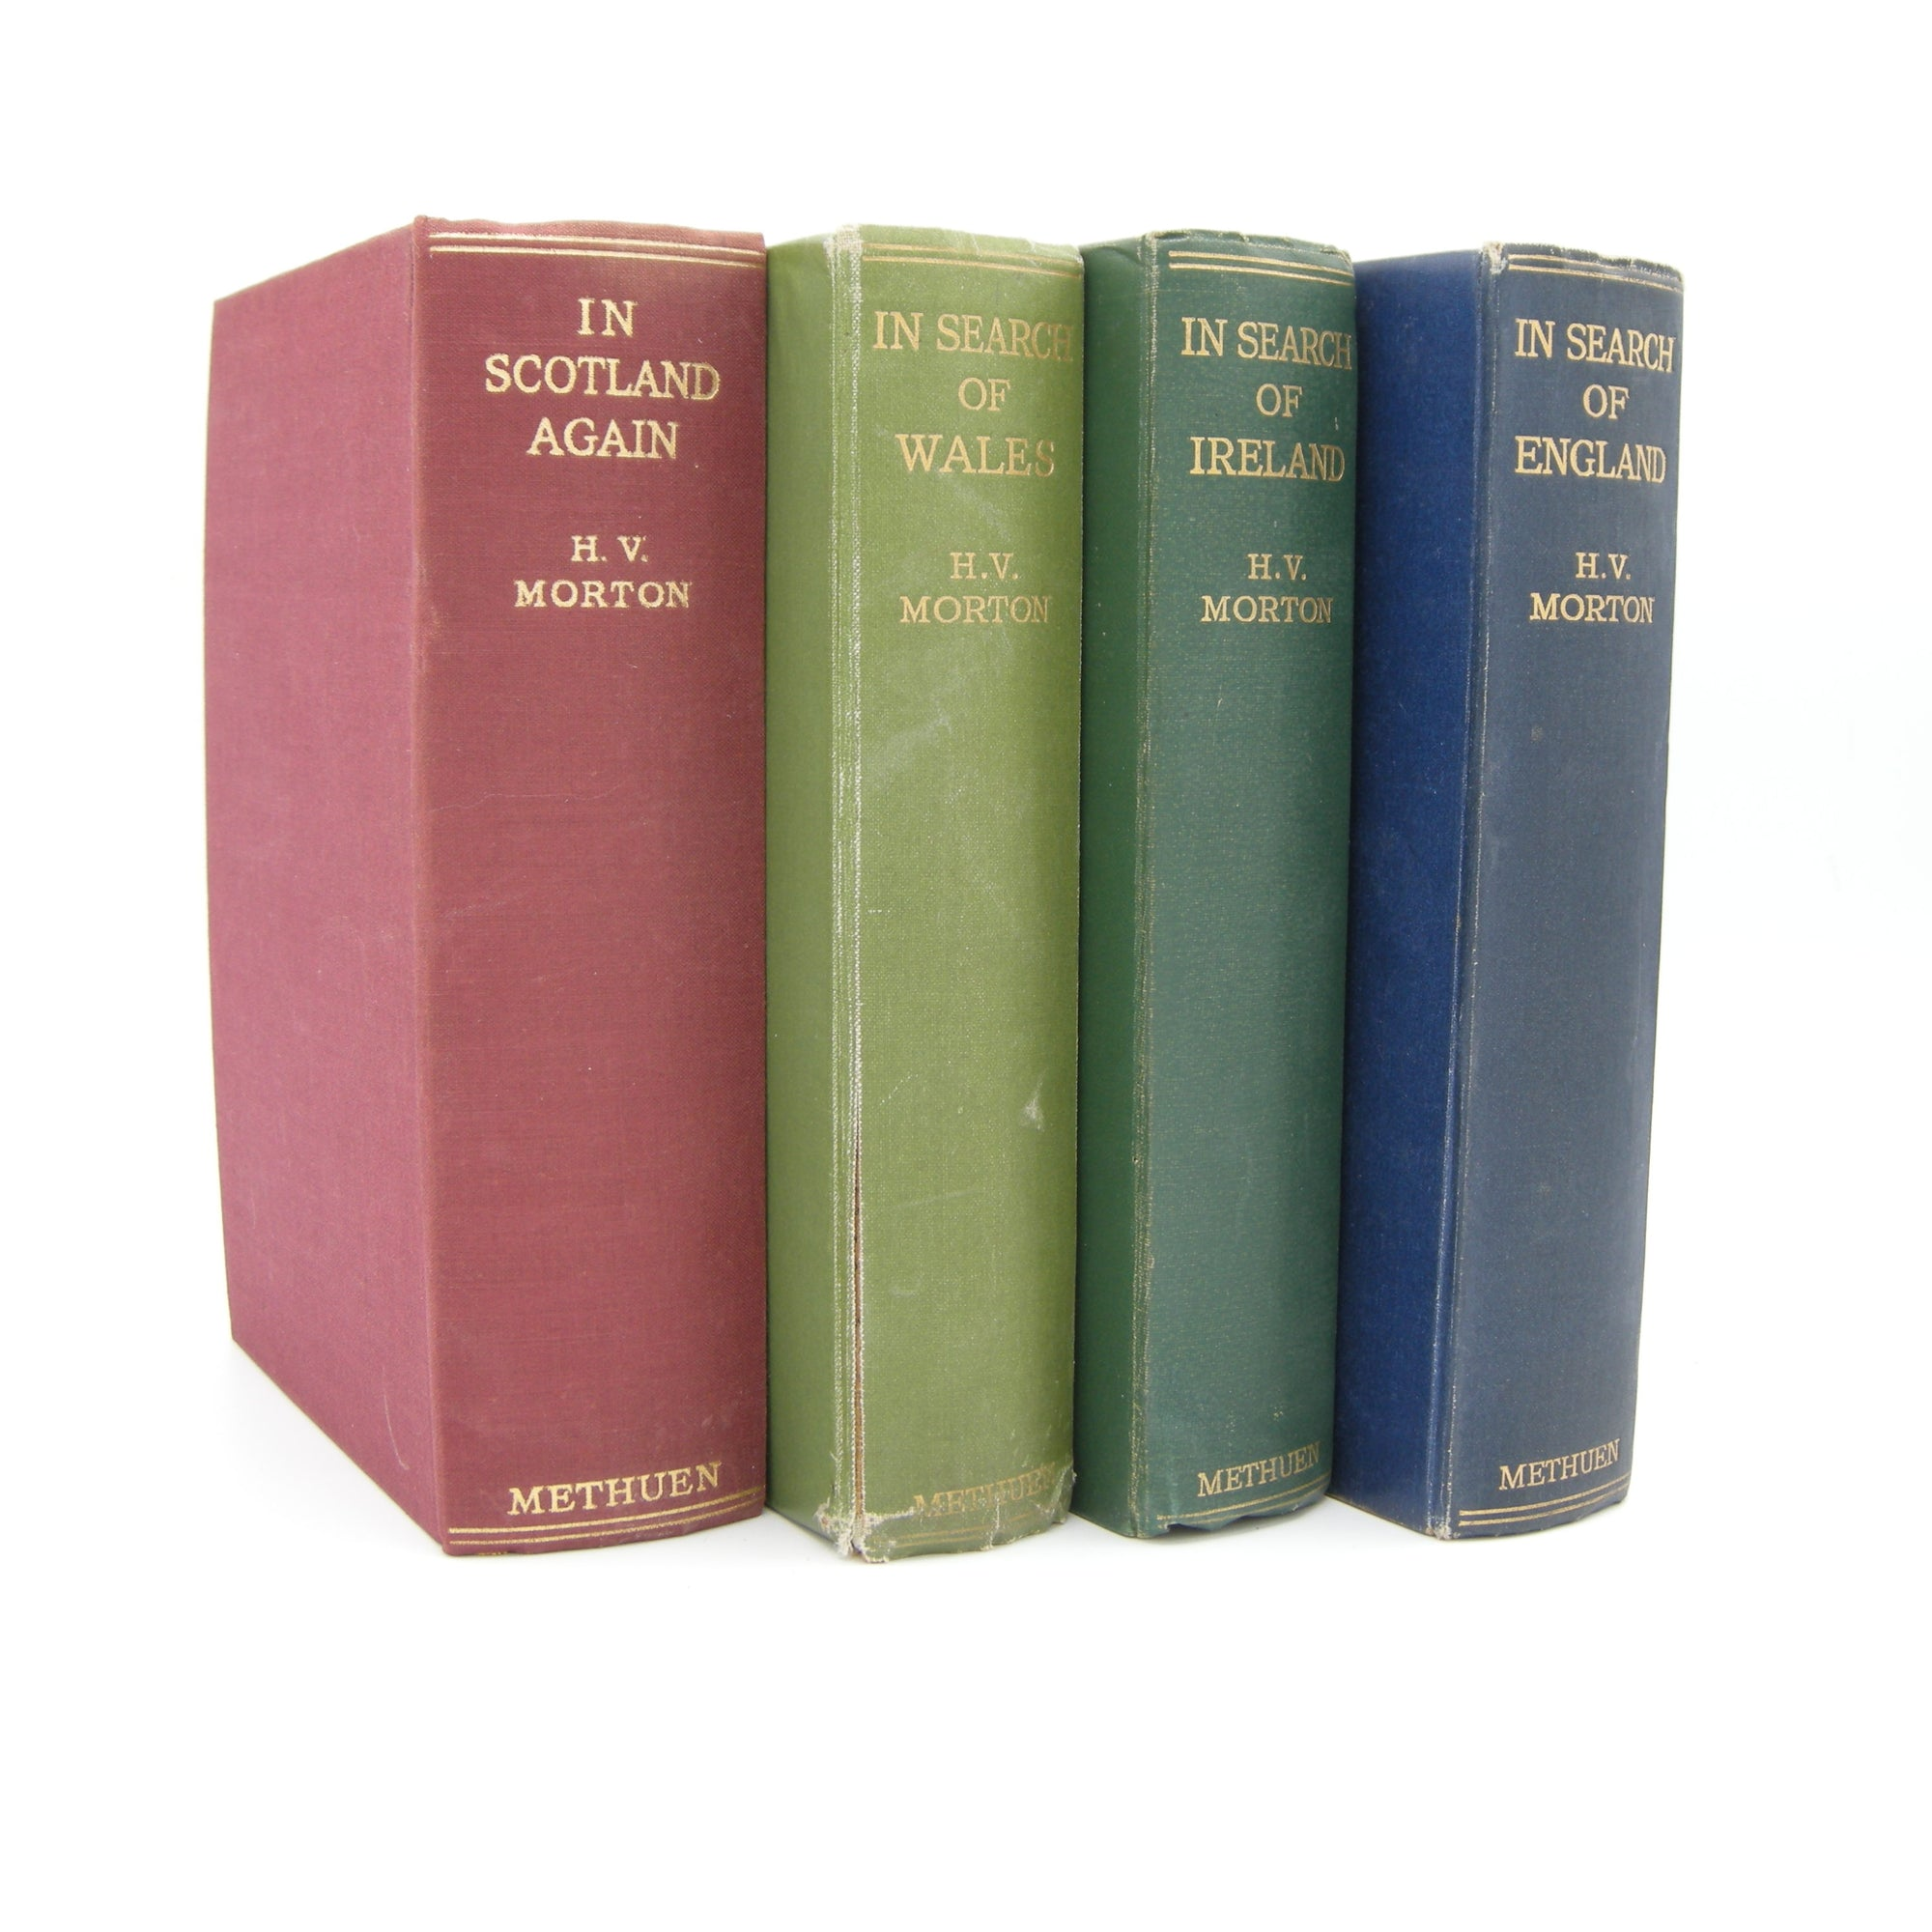 Collection of H.V Morton Books (Vintage, Decor, Classic) - Bluebell Abbey